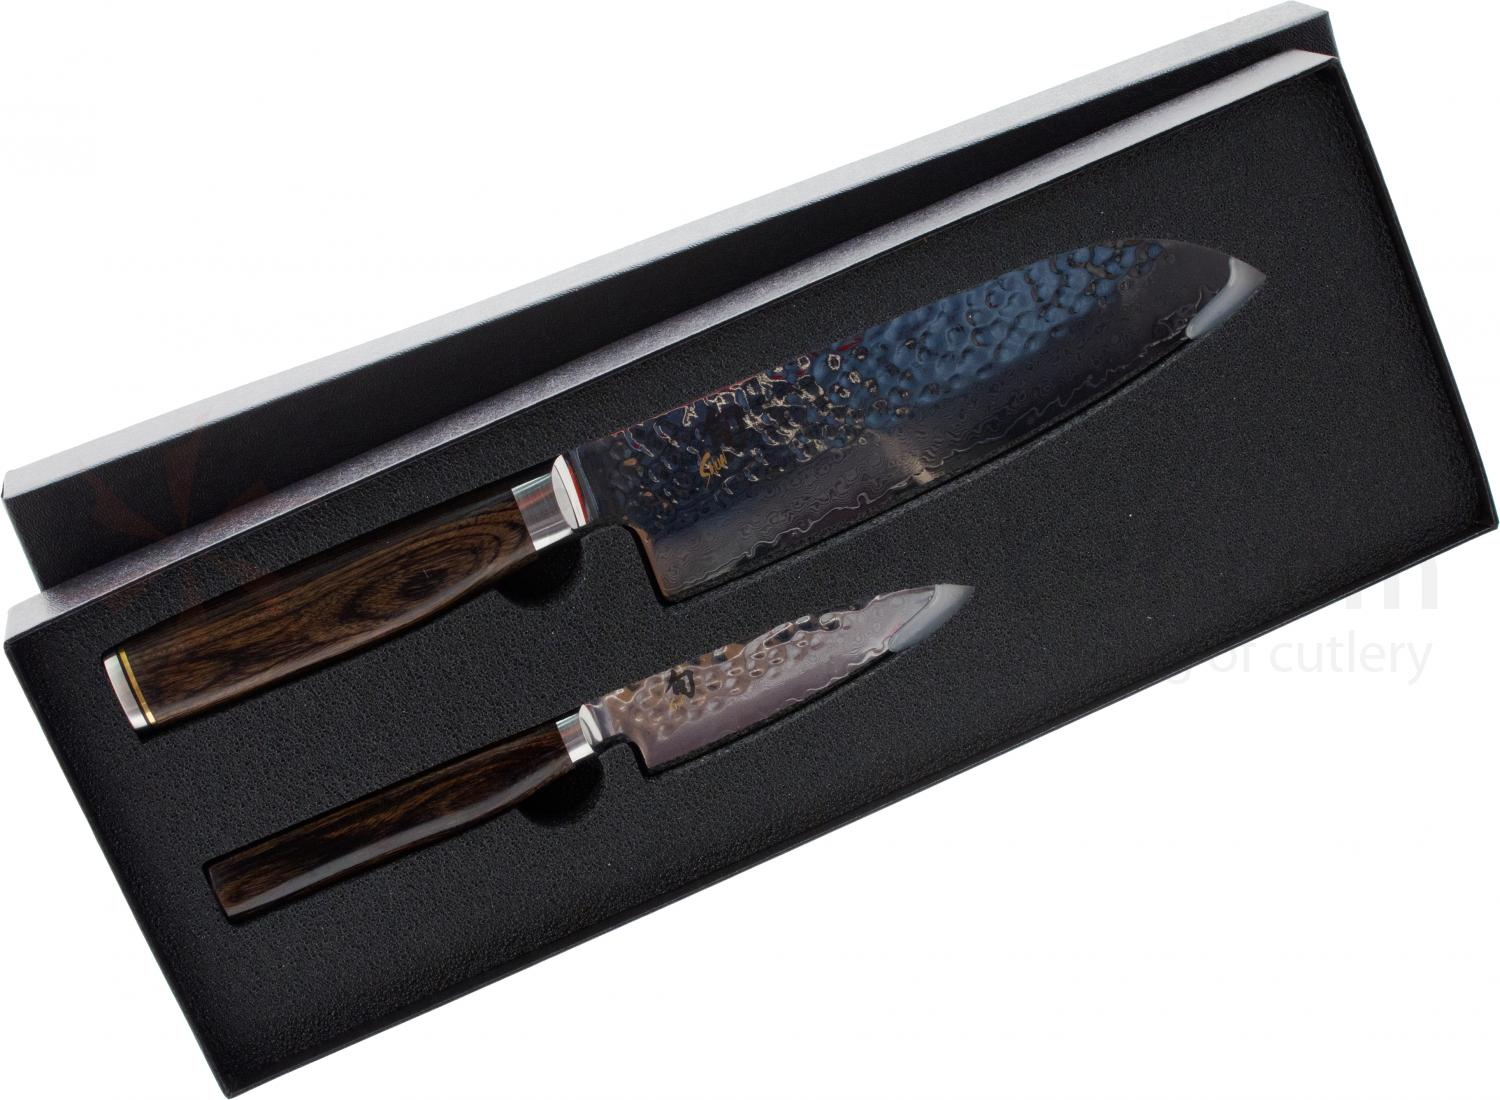 Shun TDMS284 Premier 2 Piece Try Me Set, 7 inch Santoku and 4 inch Limited Edition Paring Knives